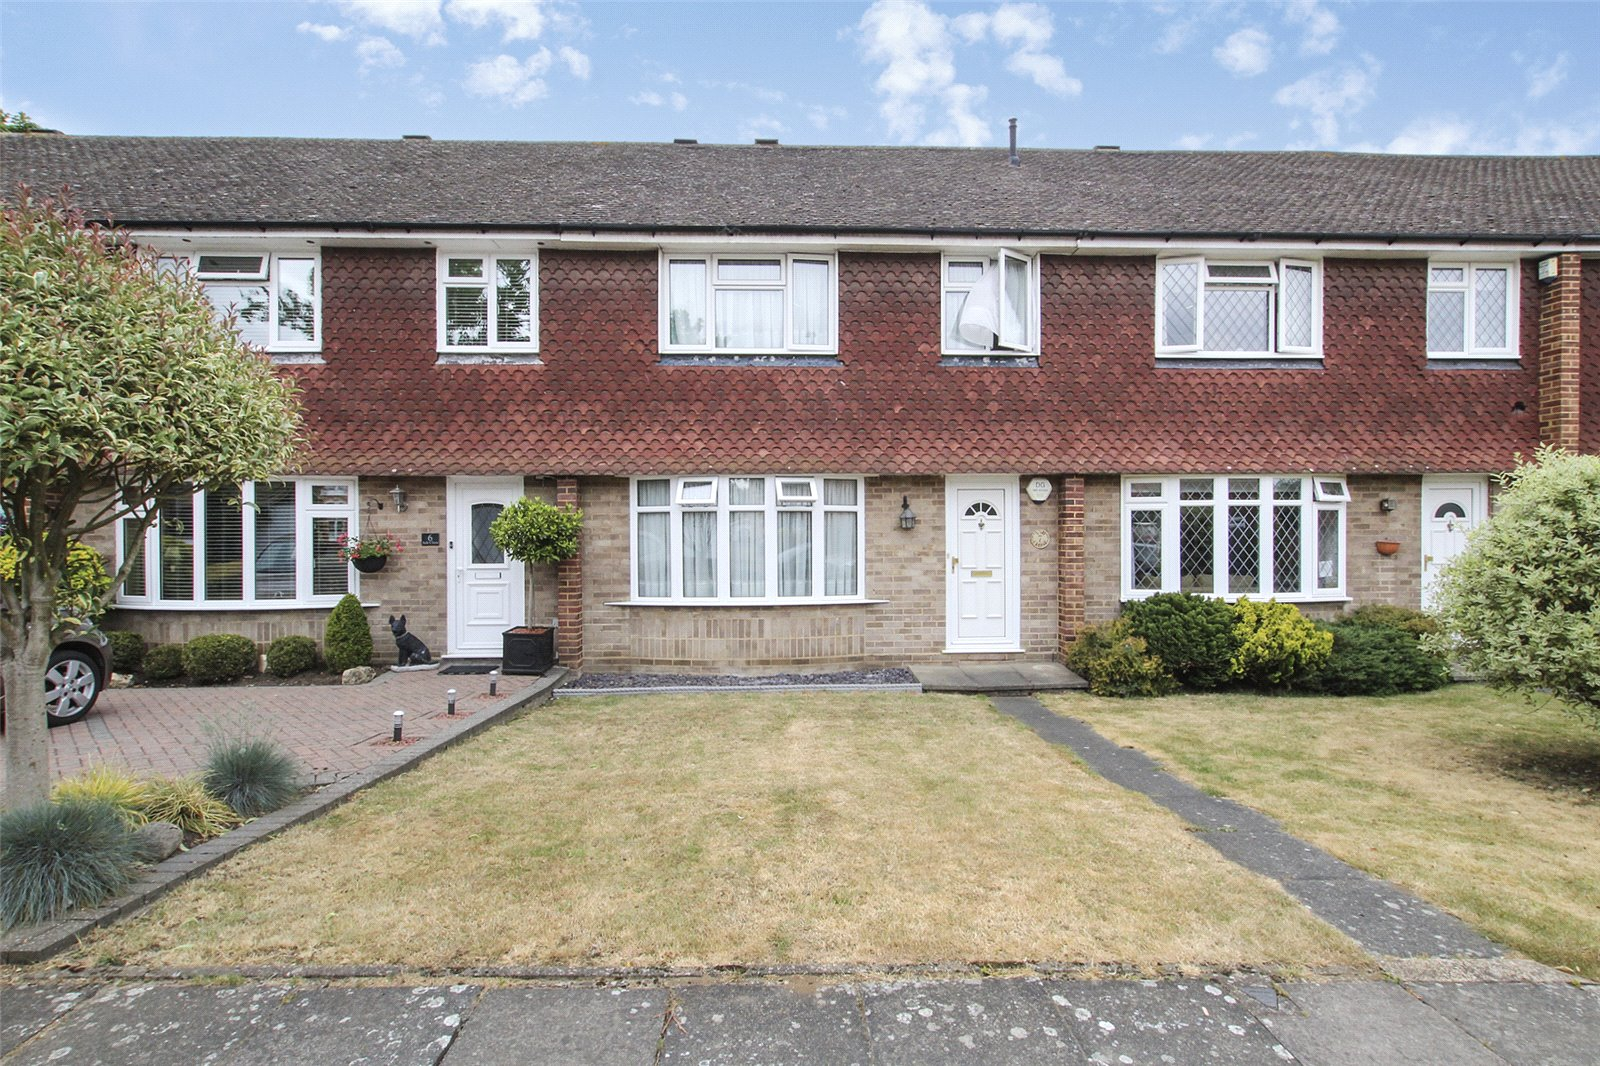 Ash Close, Sidcup, Kent, DA14